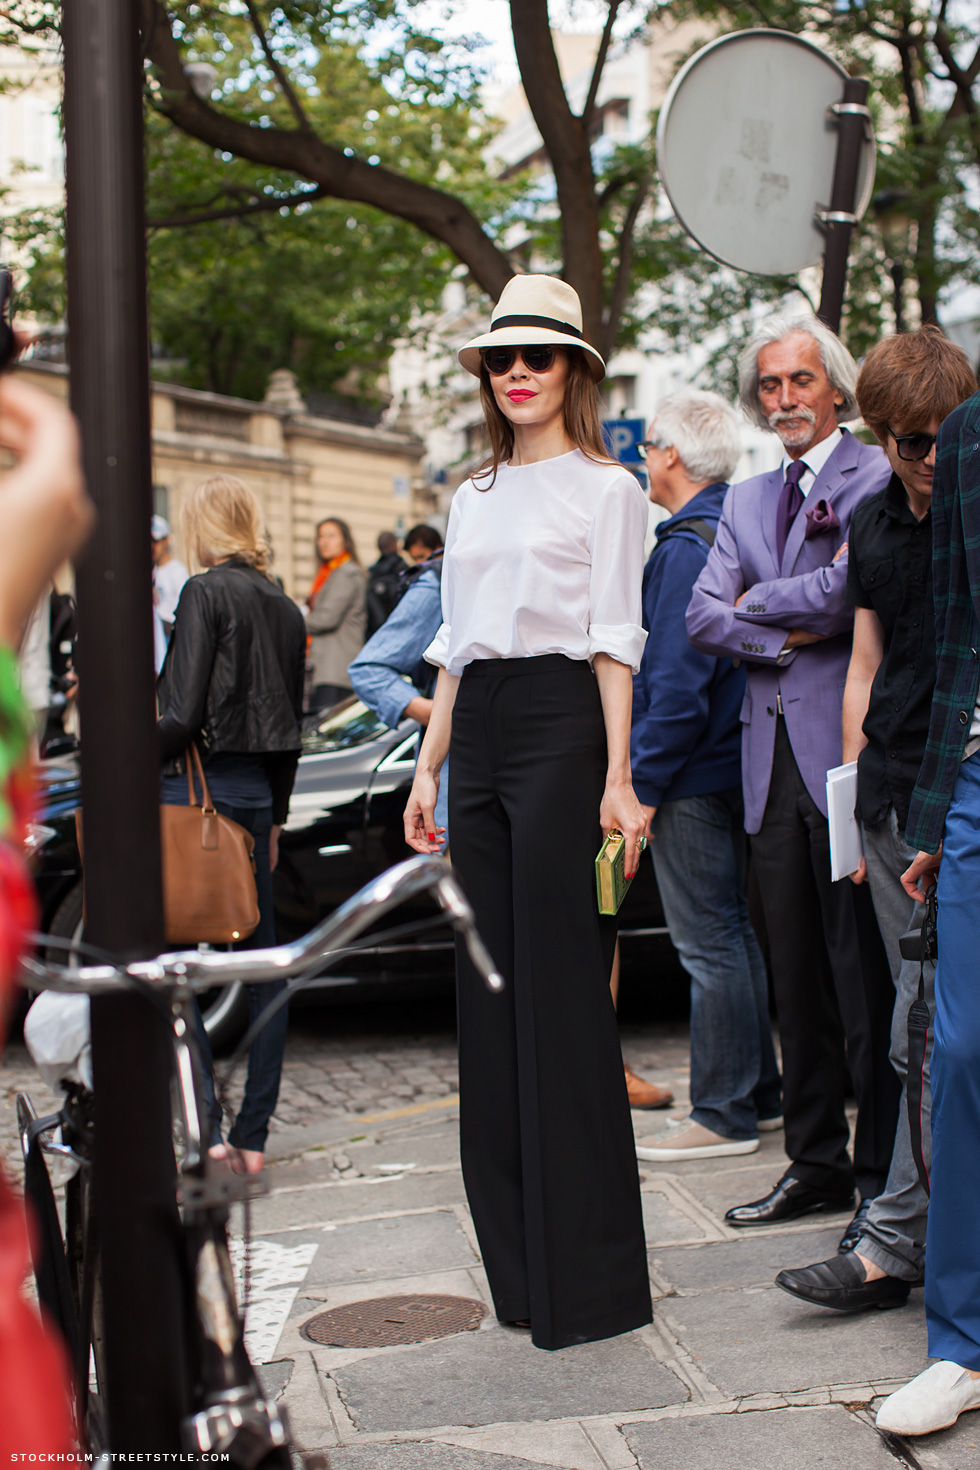 ulyana-sergeenko-high-waisted-pants-black-white-outfit-paris-2012-hat